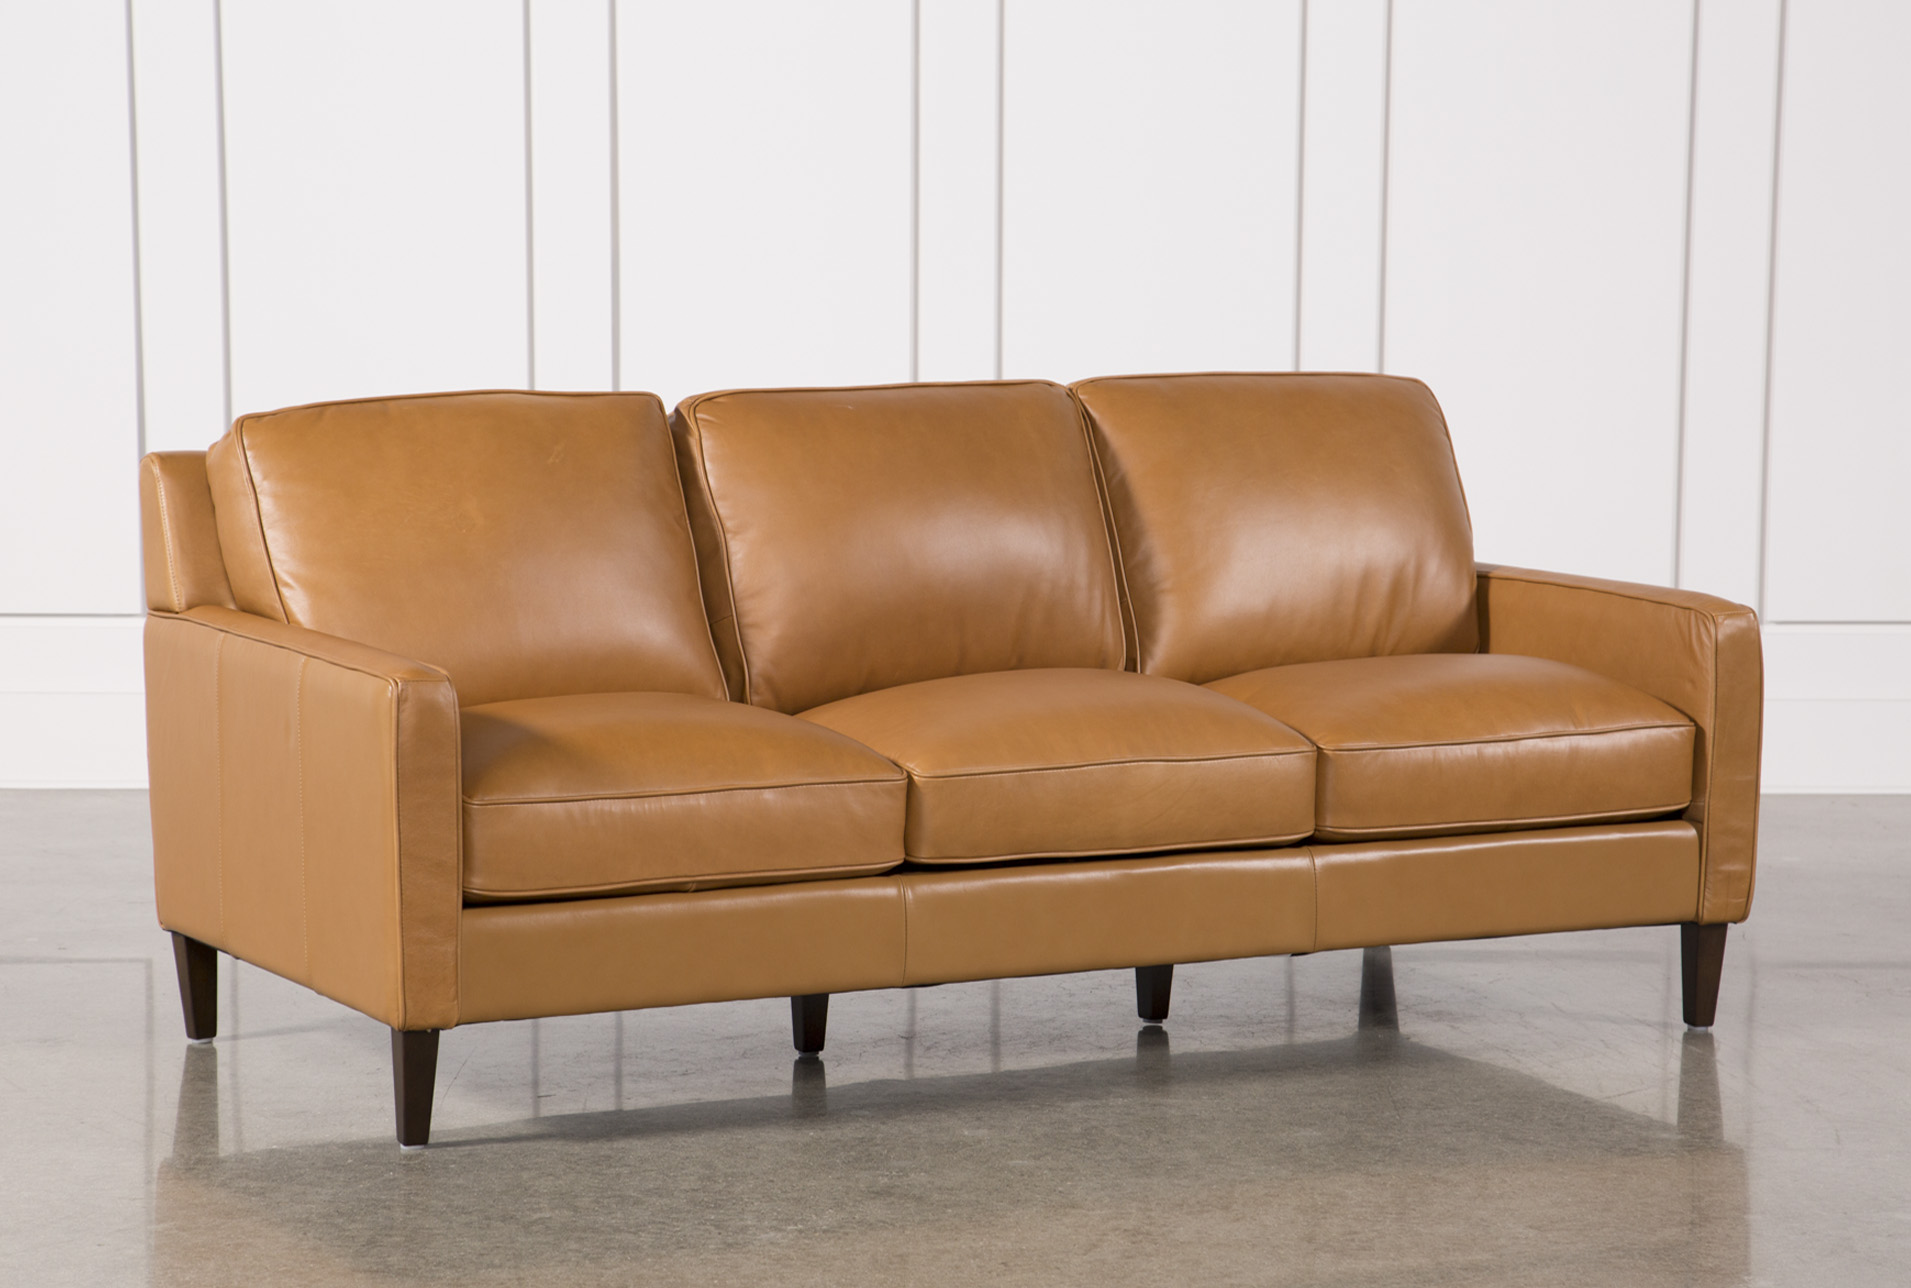 Charmant Added To Cart. Candace Leather Sofa ...